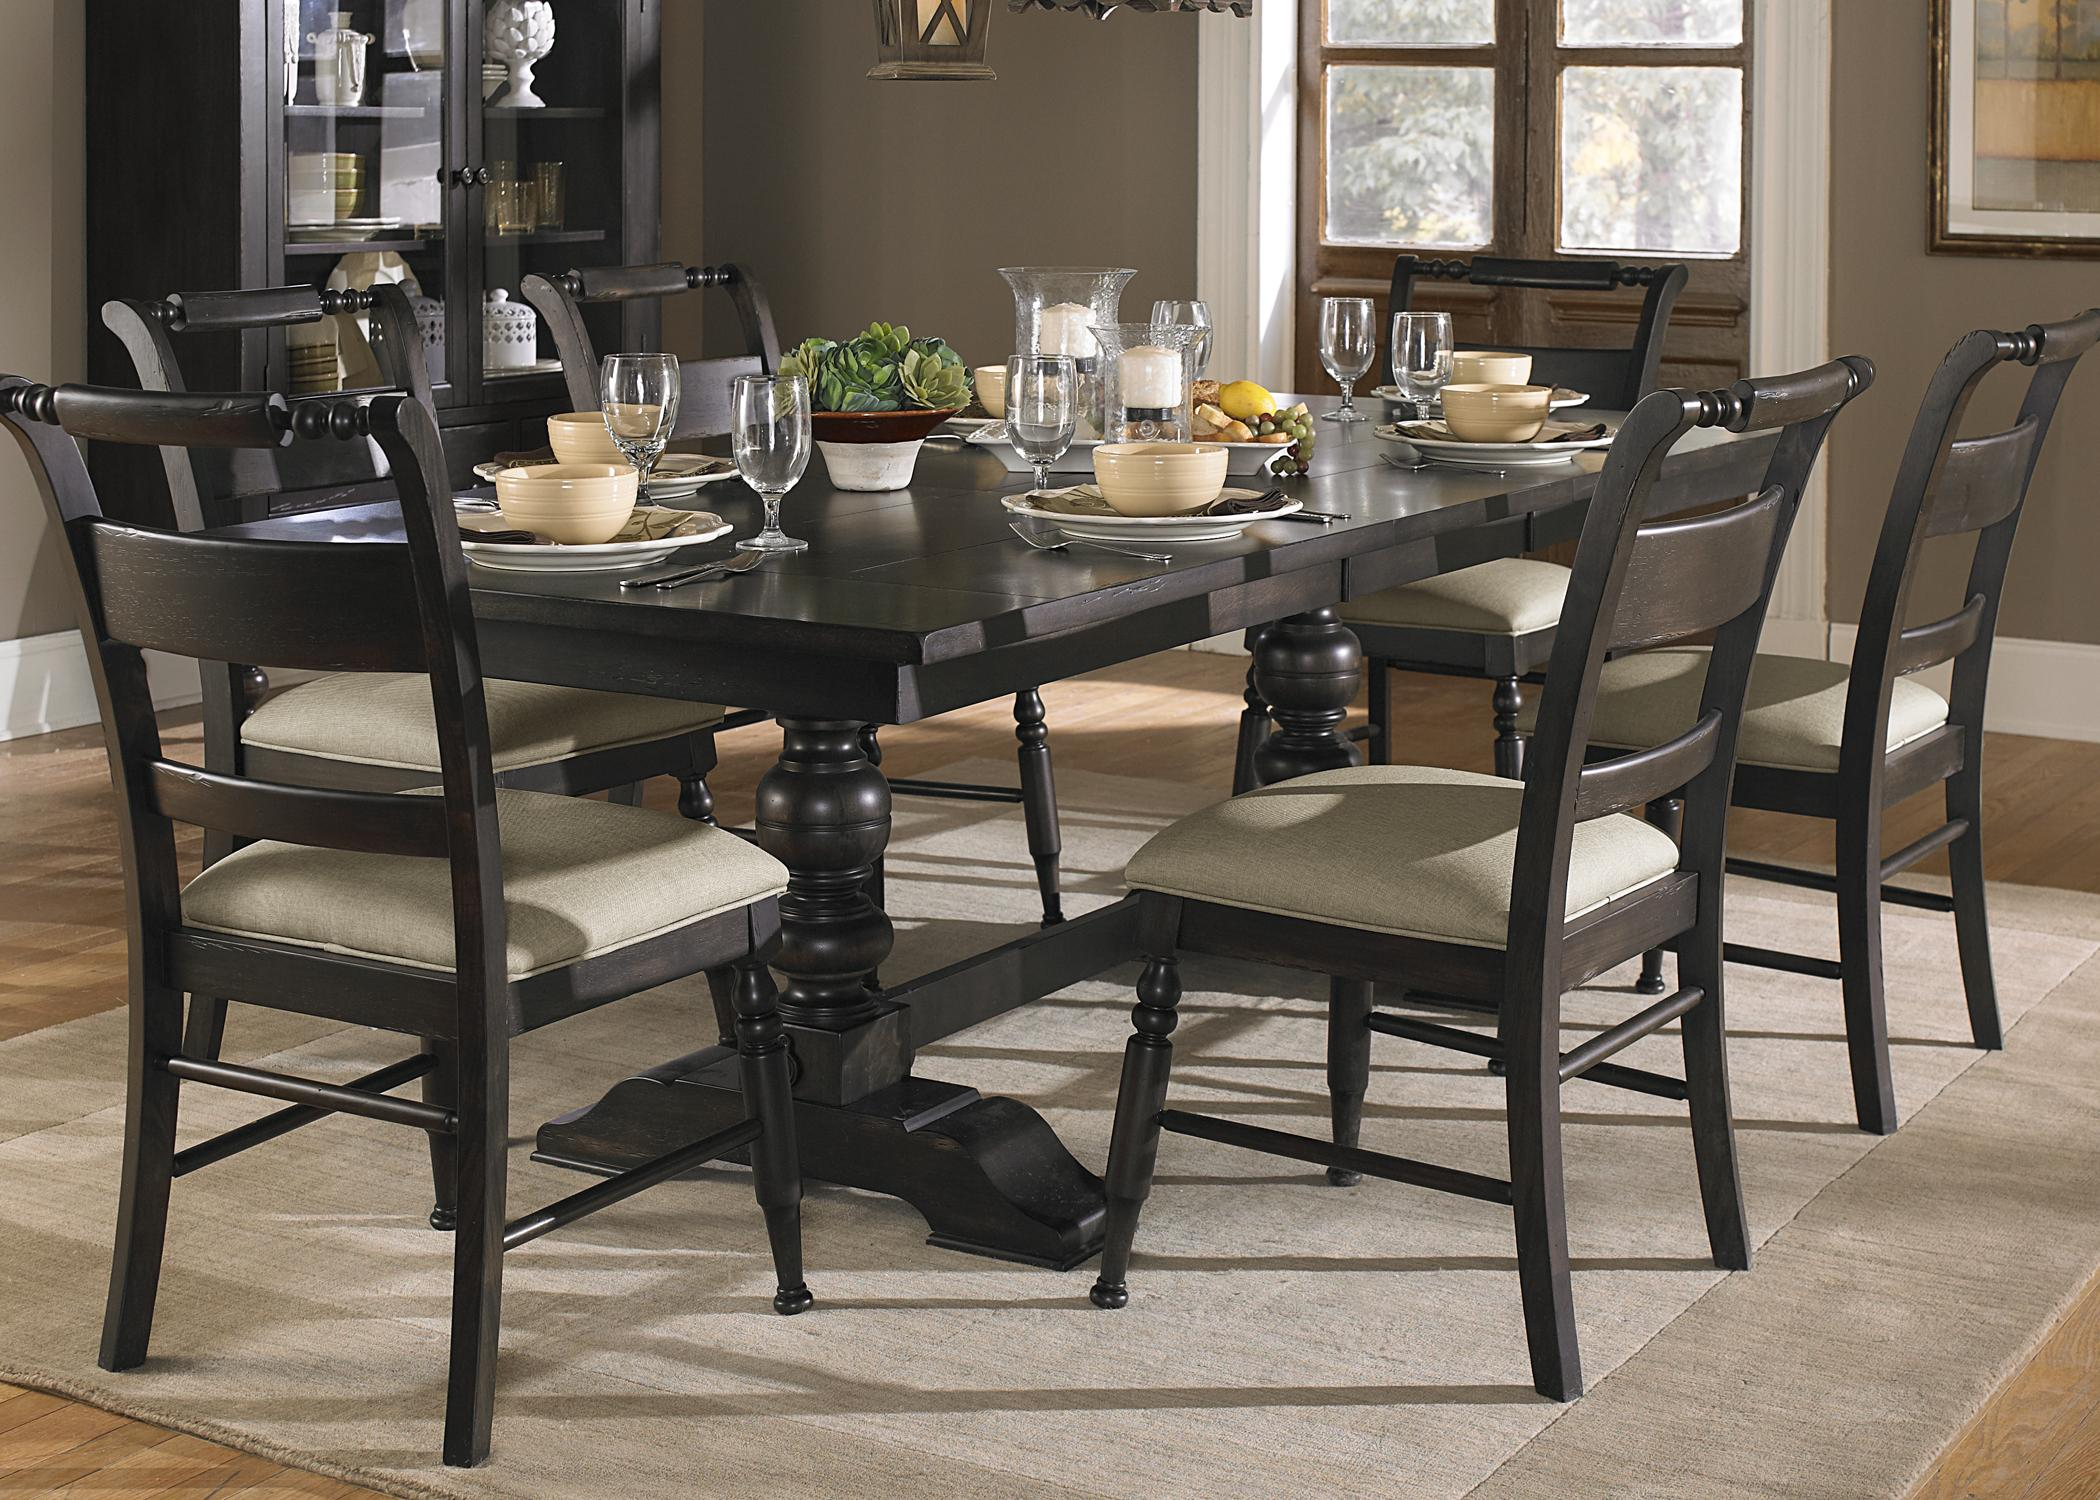 Superior 7 Piece Trestle Dining Room Table Set